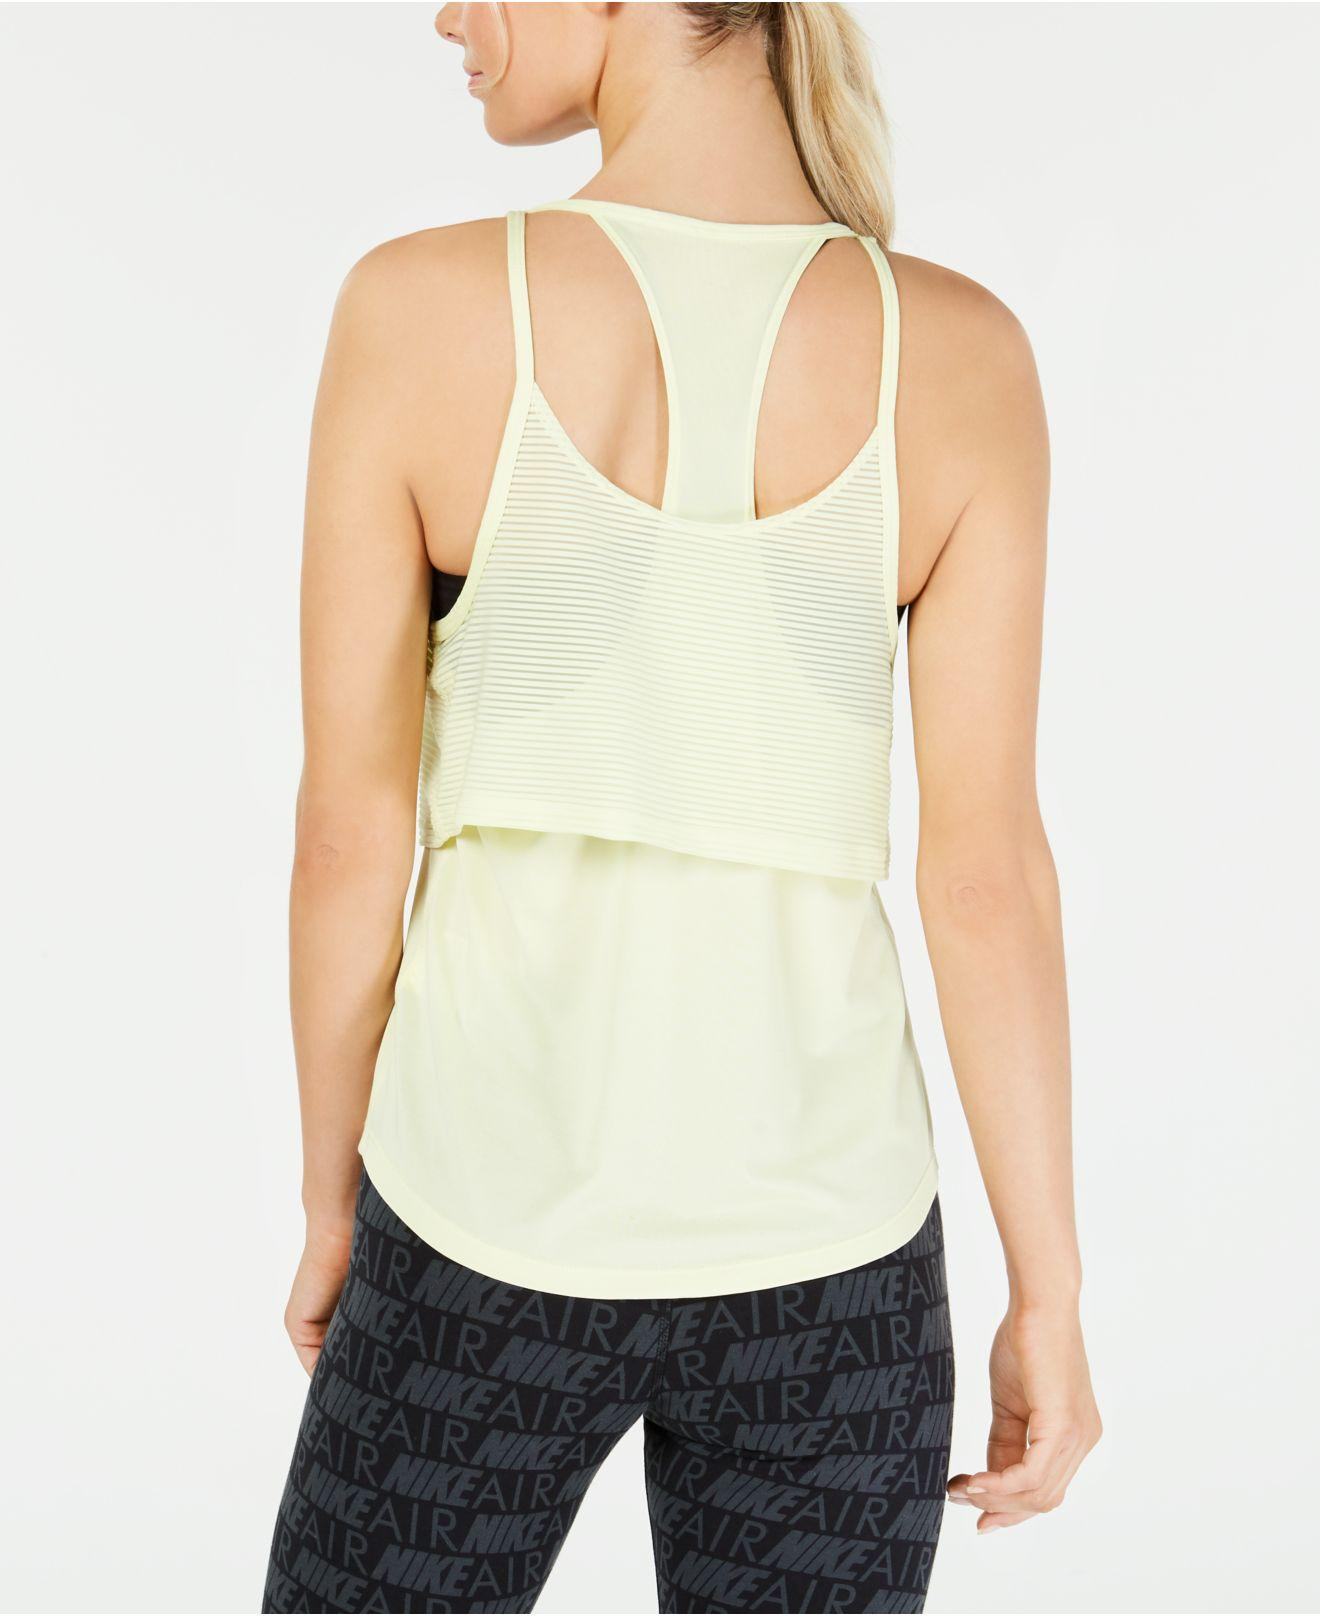 002bc746bc172 Lyst - Nike Air Layered Racerback Tank Top in Green